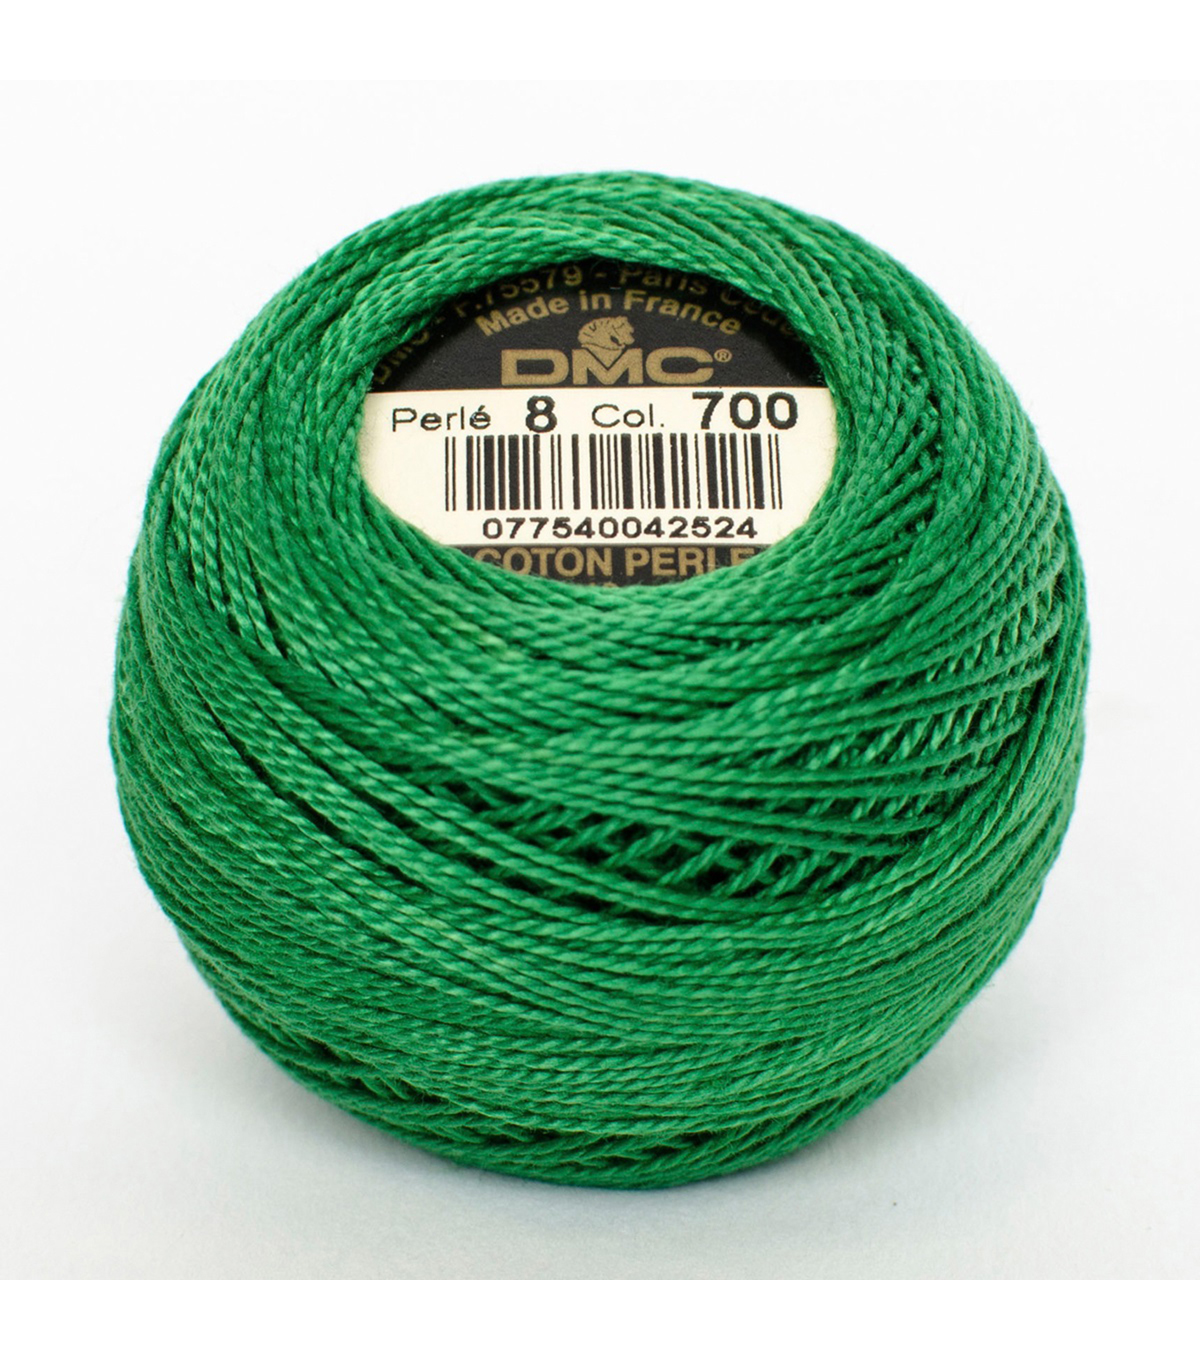 DMC Pearl Cotton Balls Thread 87 Yds Size 8, Bright Green